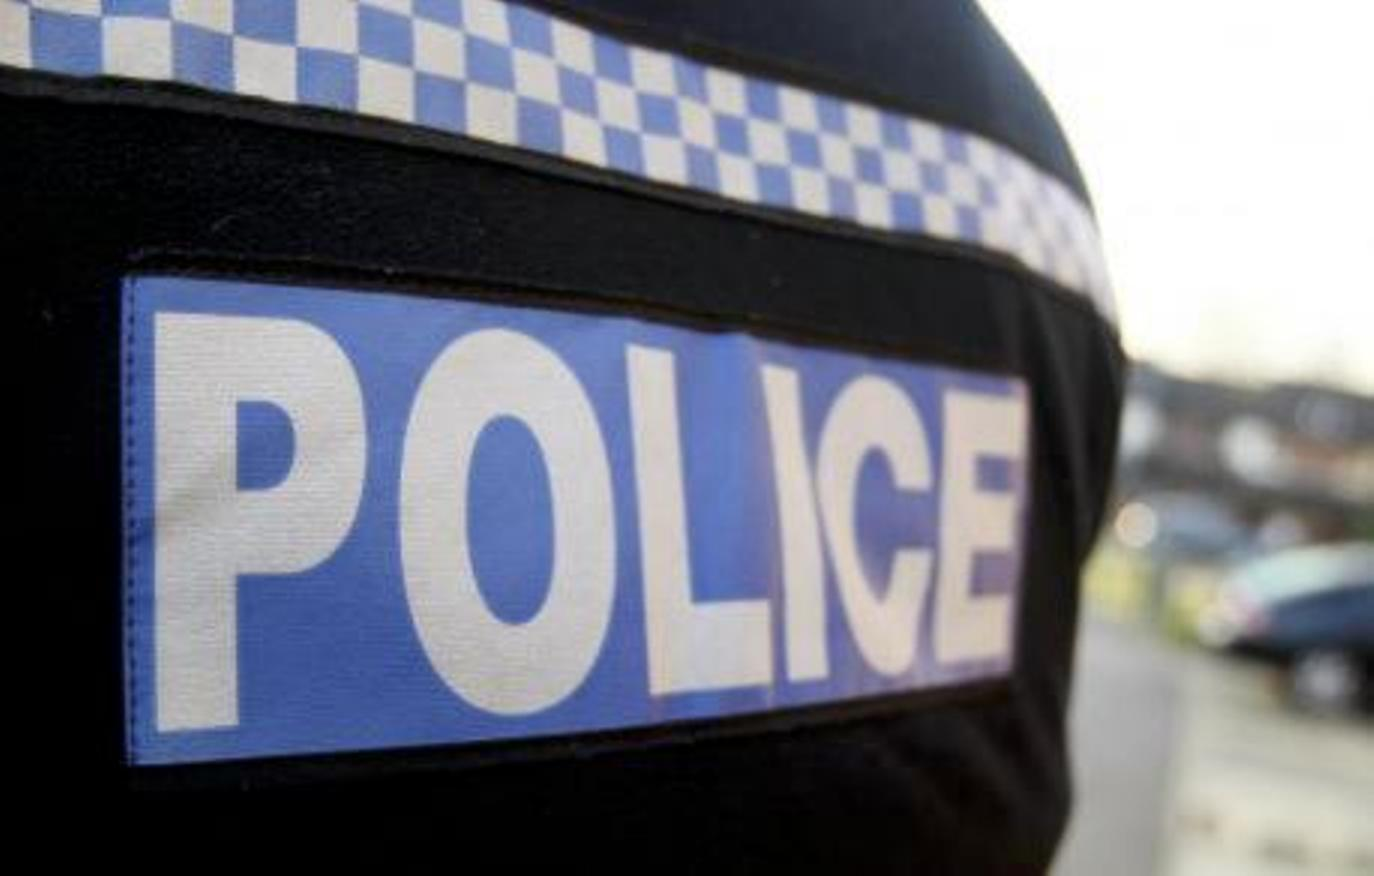 Dog-walker robbed at knifepoint in Clacton